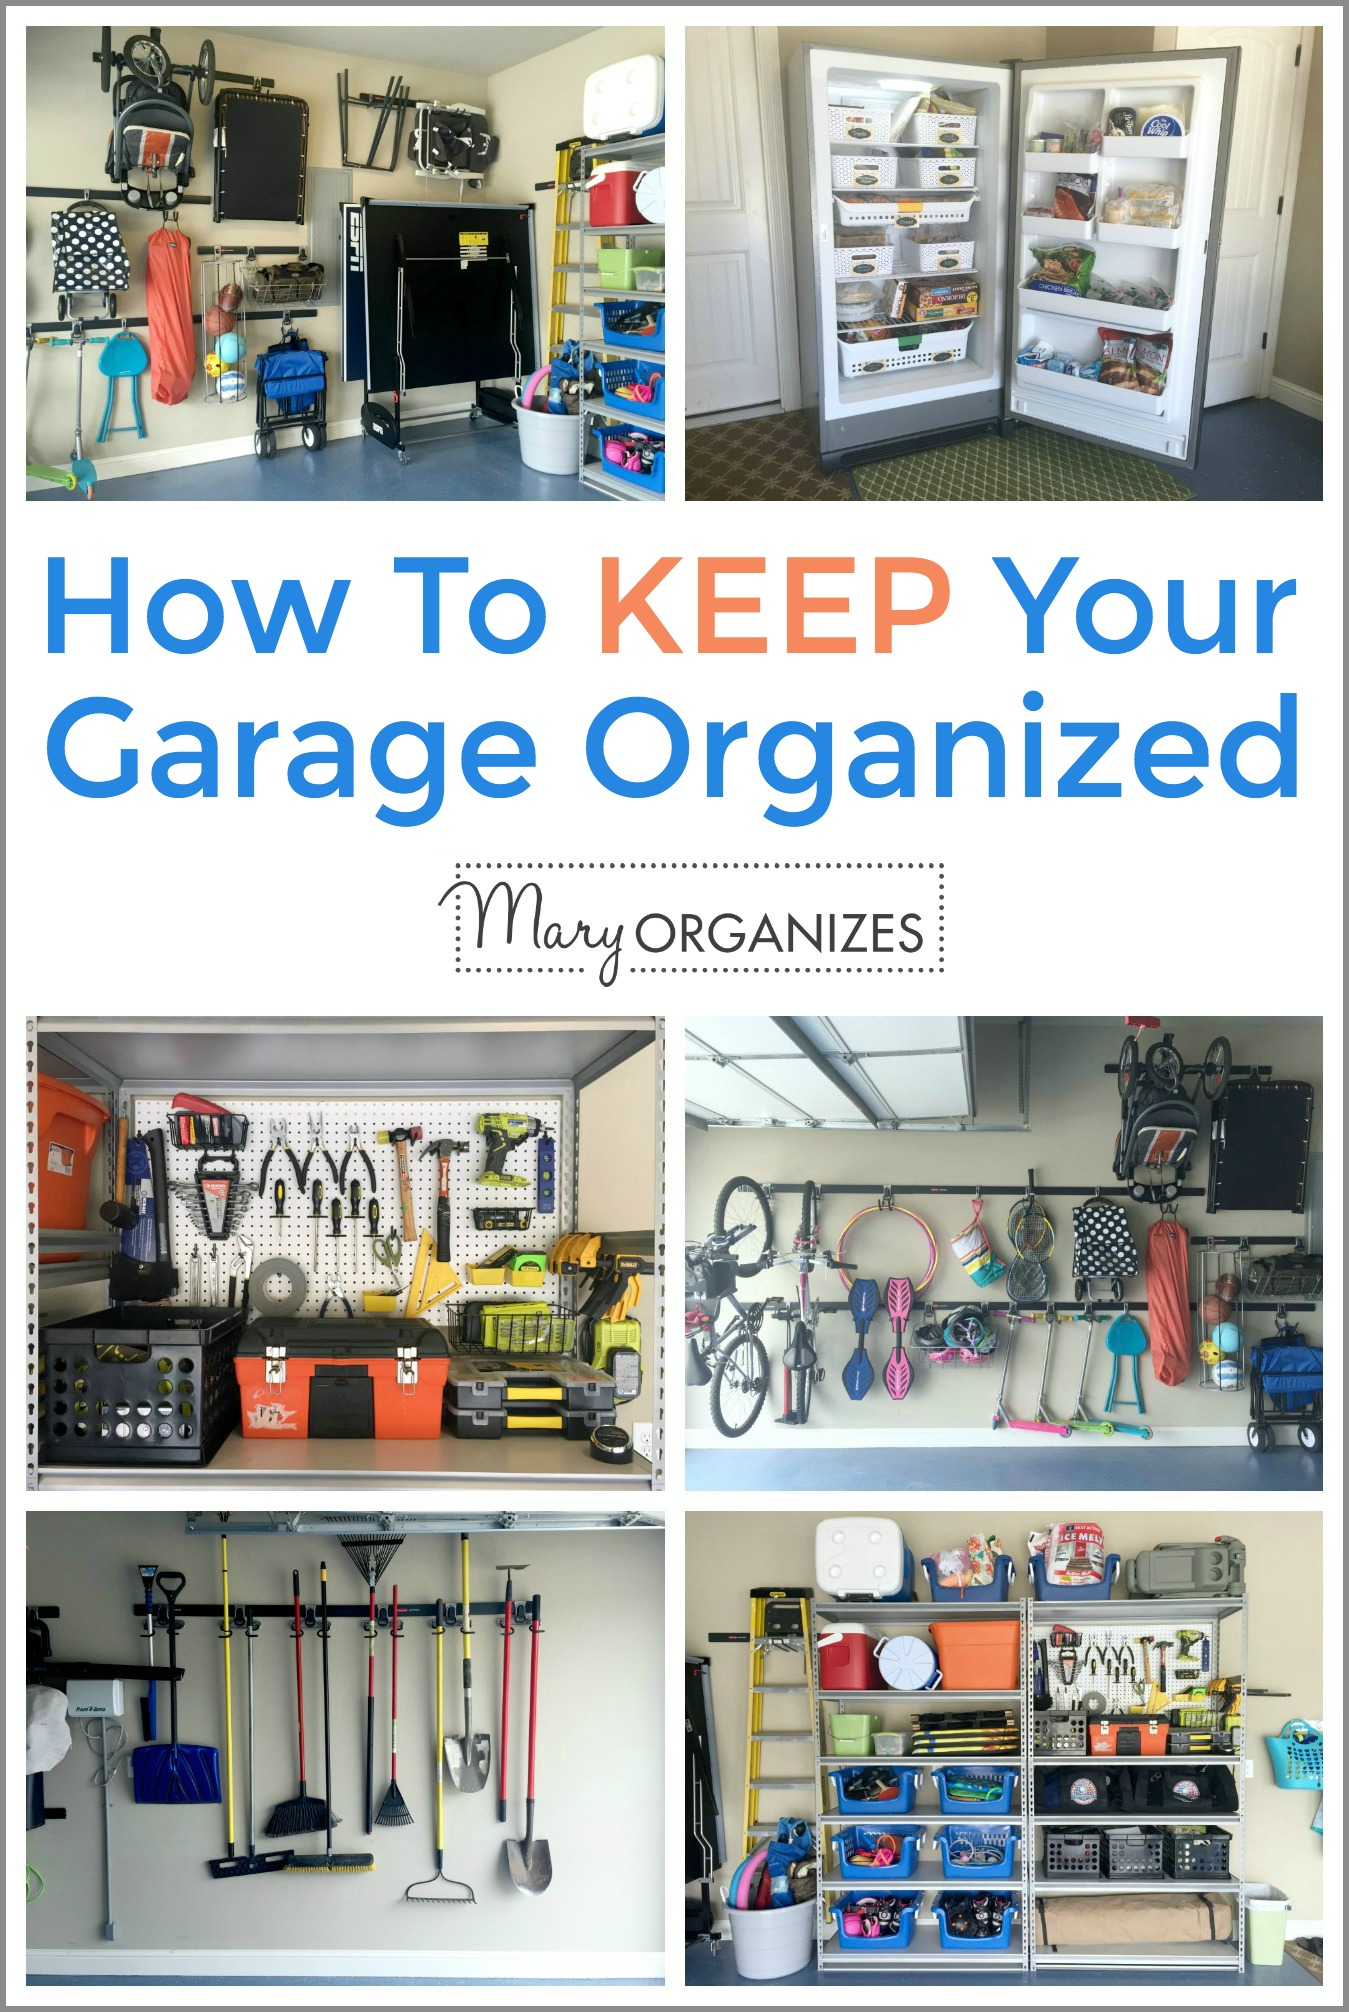 How To Keep Your Garage Organized -v